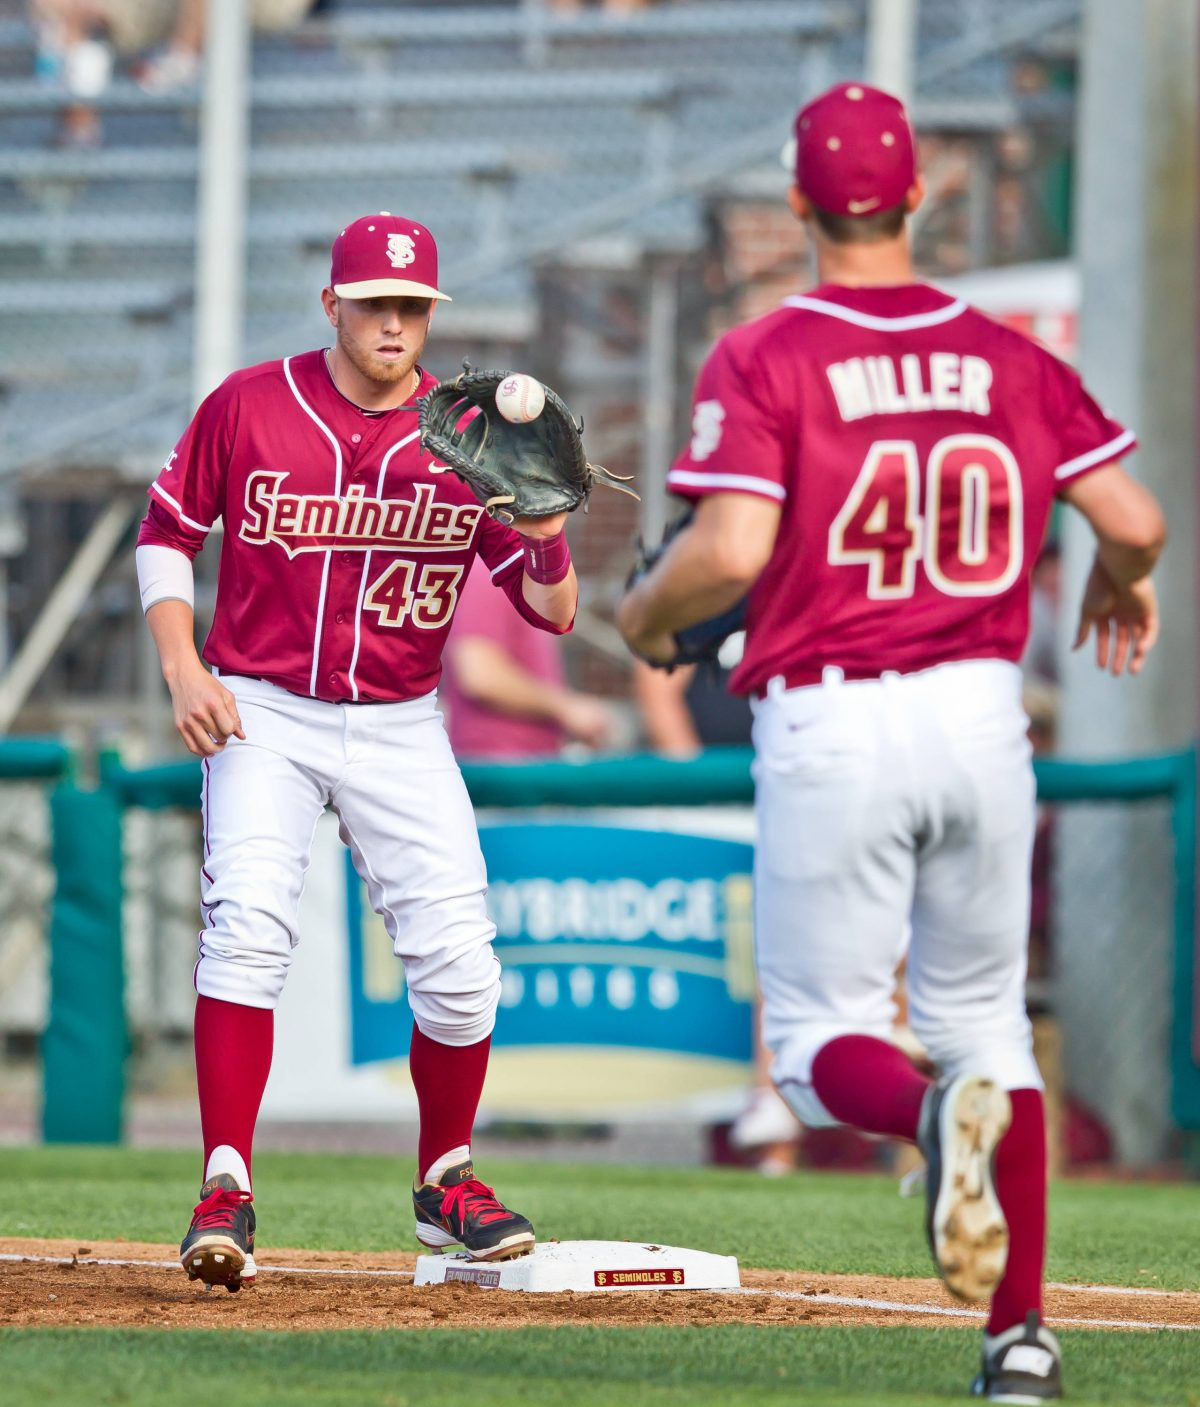 Peter Miller tosses to Casey Smit for the first out of the game.